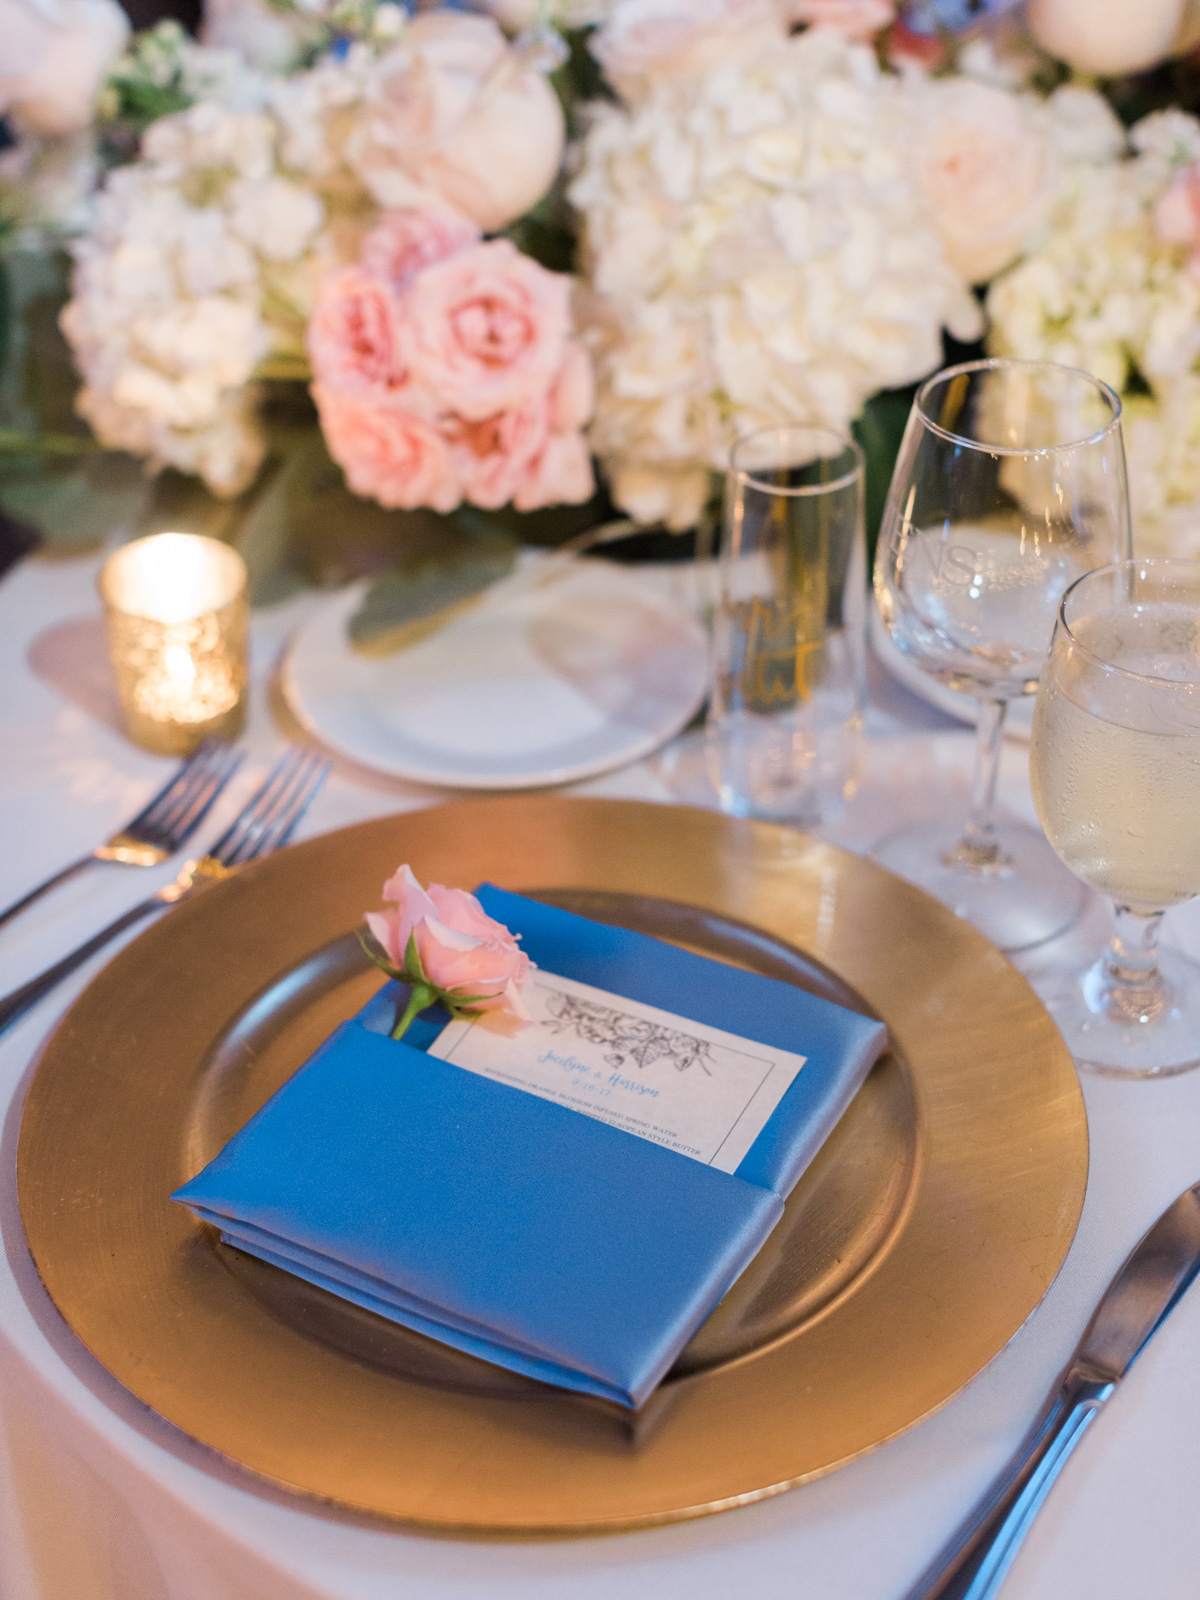 Blue and blush sweetheart table |Harrison & Jocelyne's gorgeous Temecula wedding day at Wiens Family Cellars captured by Temecula wedding photographers Betsy & John